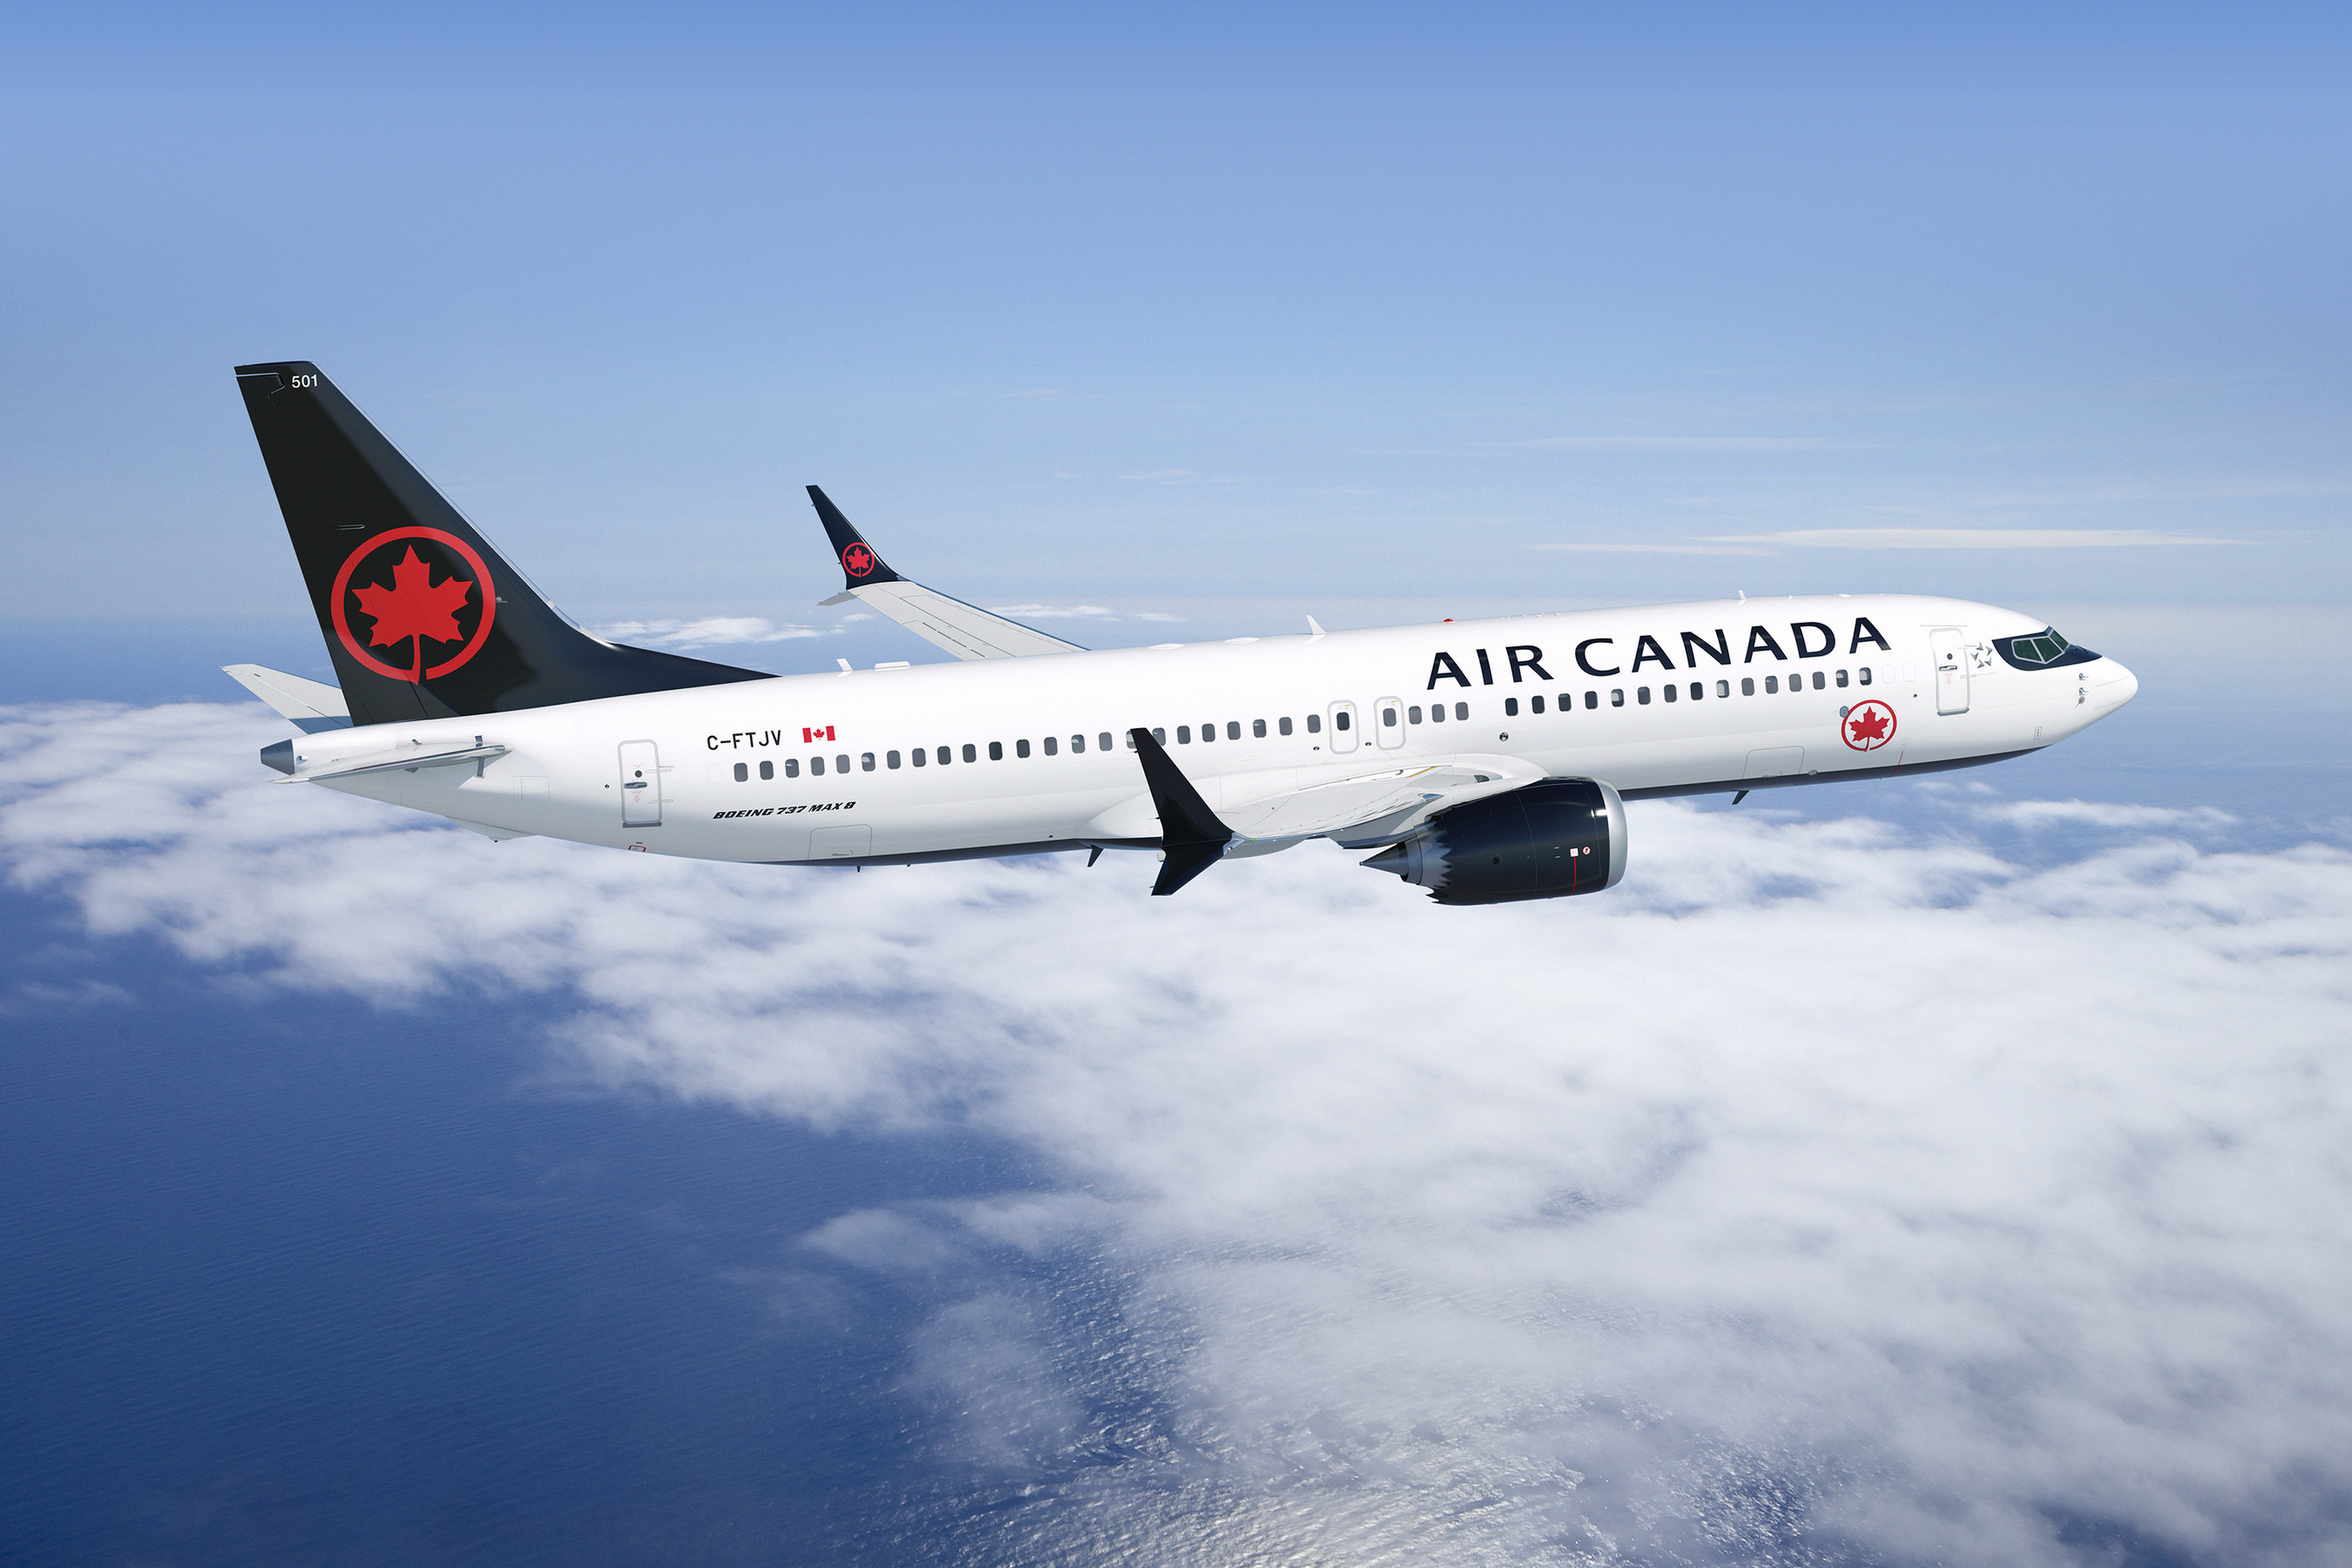 Air Canada named one of Canada's Top 100 Employers for 6th